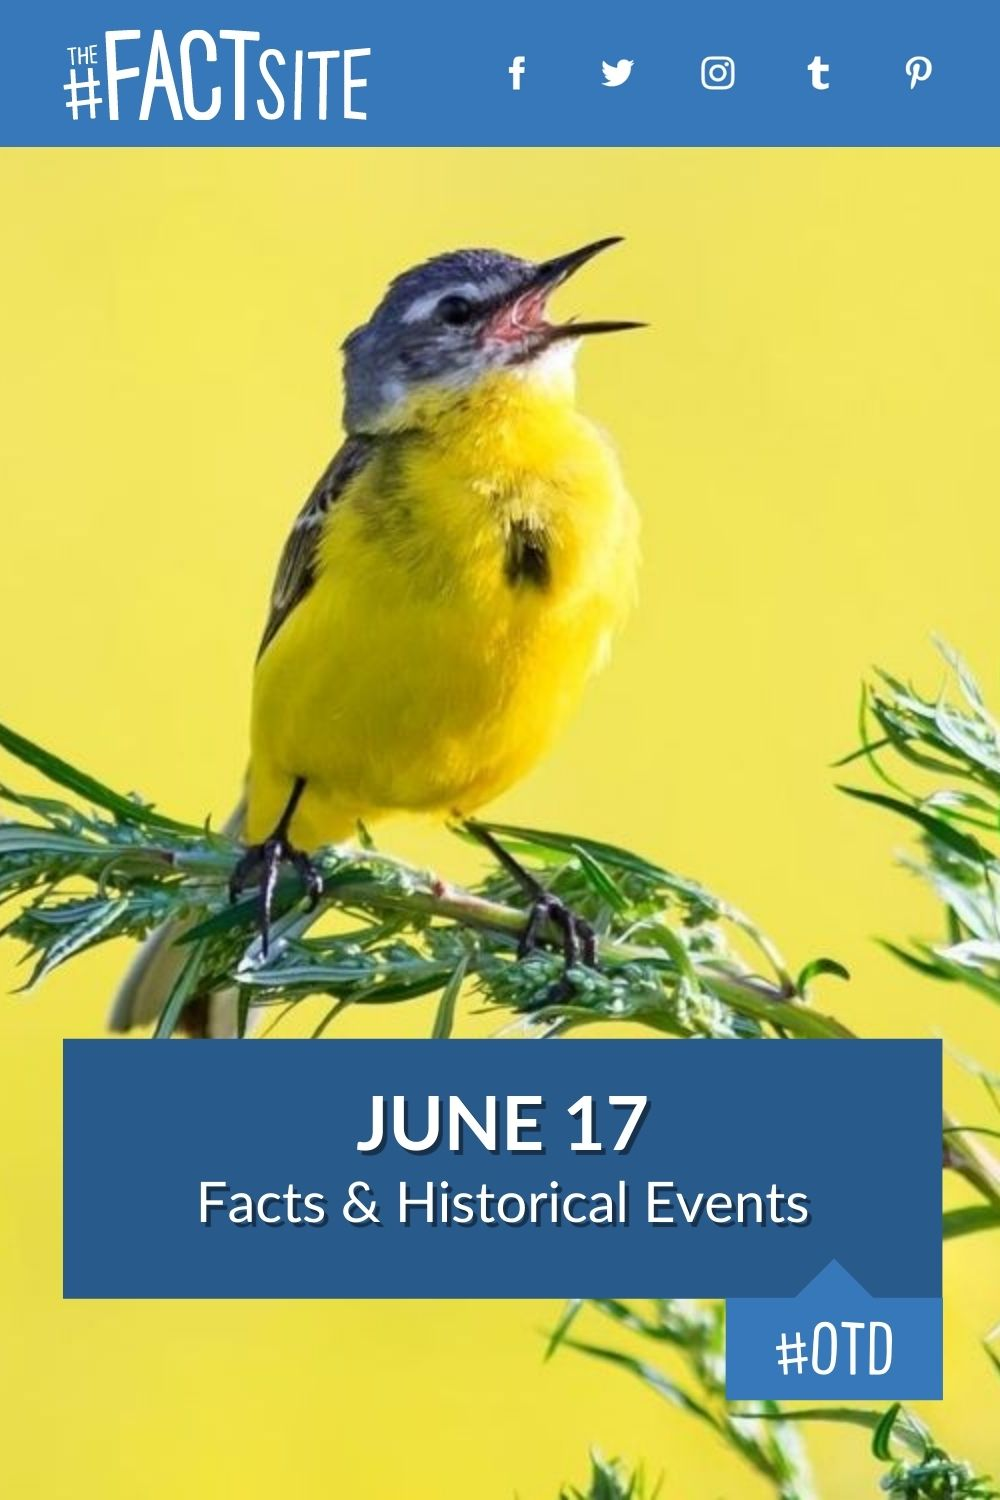 Facts & Historic Events That Happened on June 17